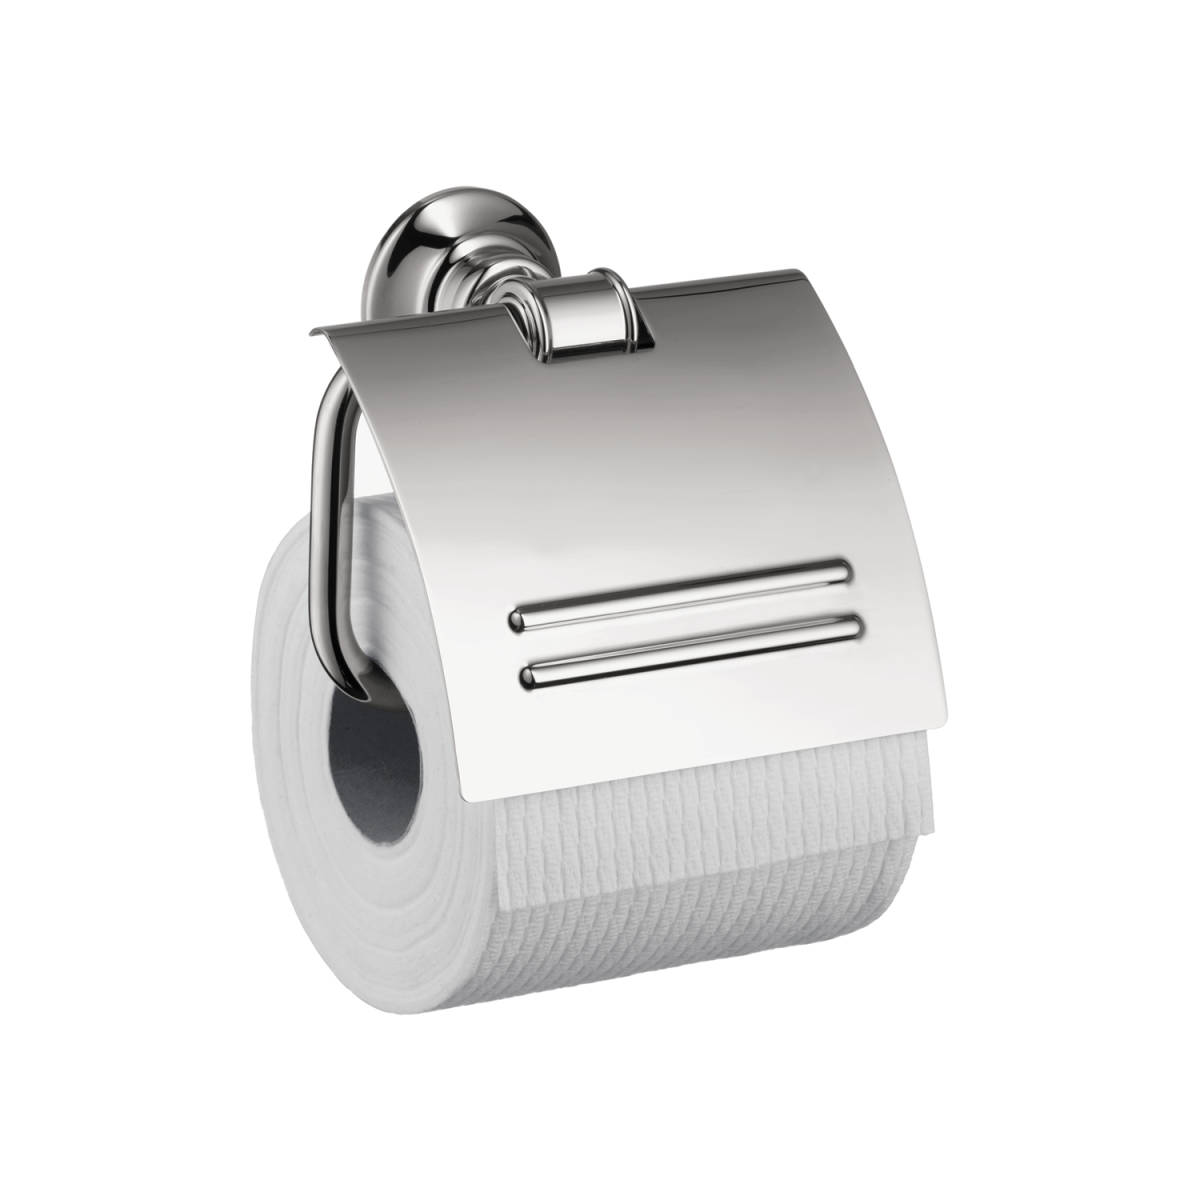 AXOR Montreux Toilet Paper Holder with Cover, chrome, 42036000